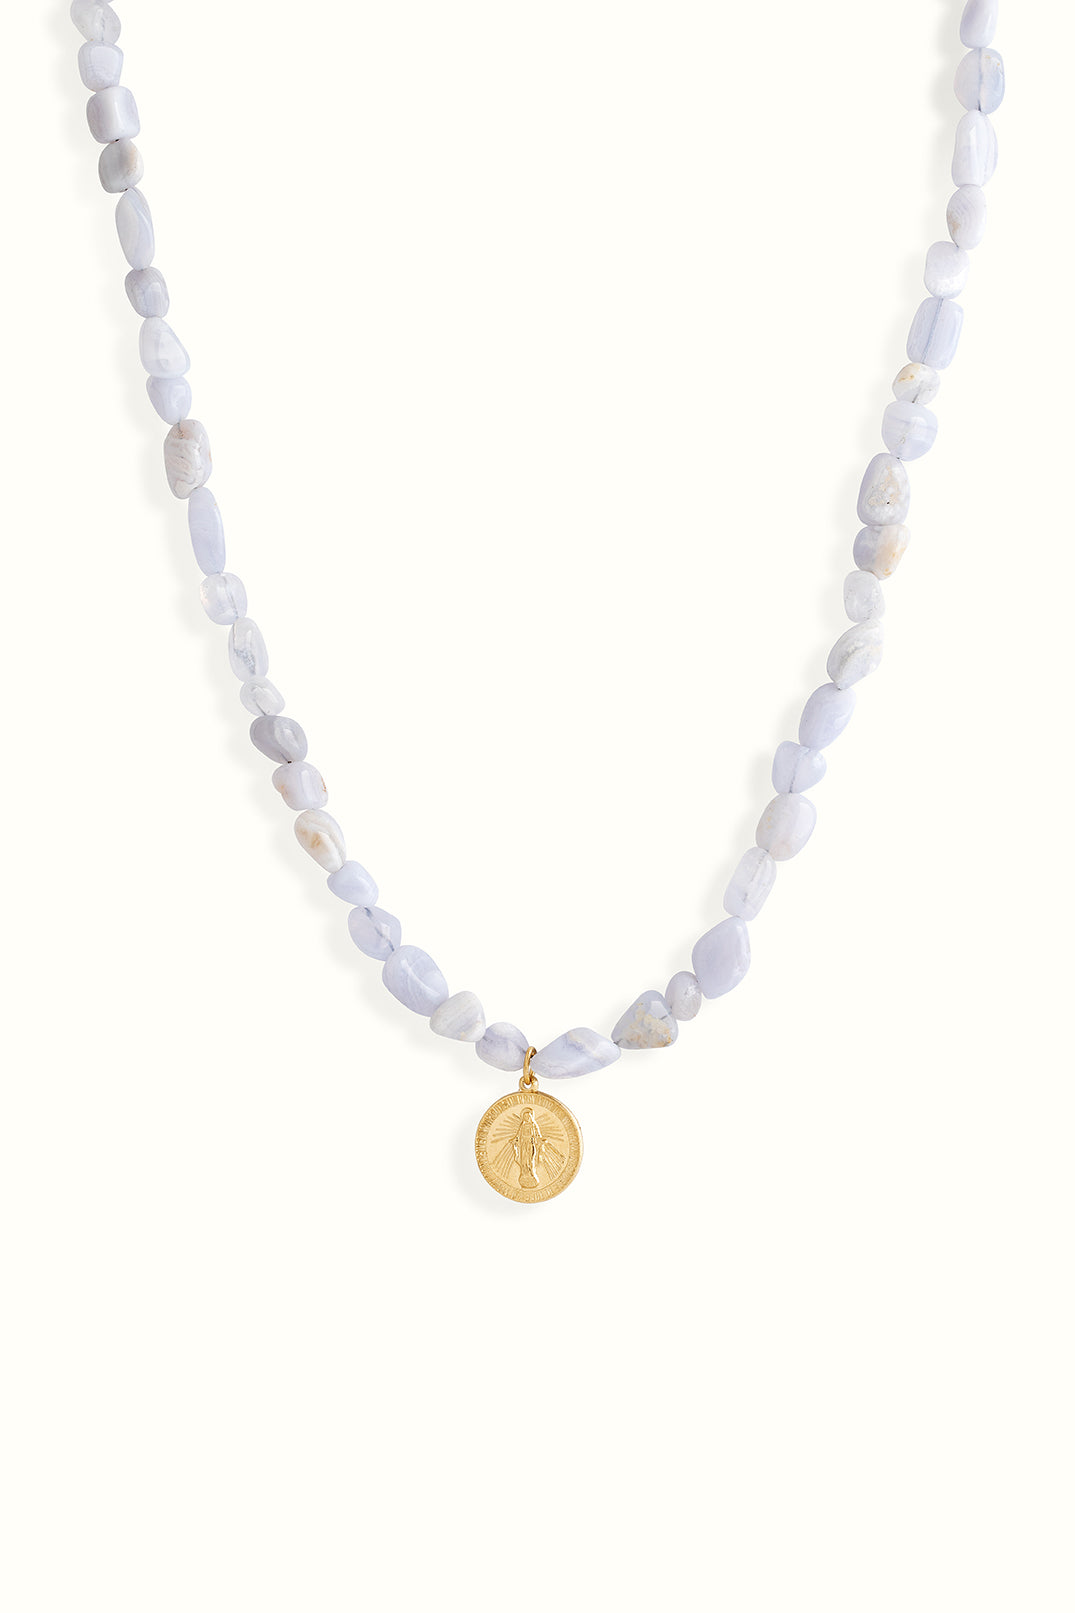 a product picture of a blue lace gemstone beaded necklace with a gold filled round mary pendant on a white background